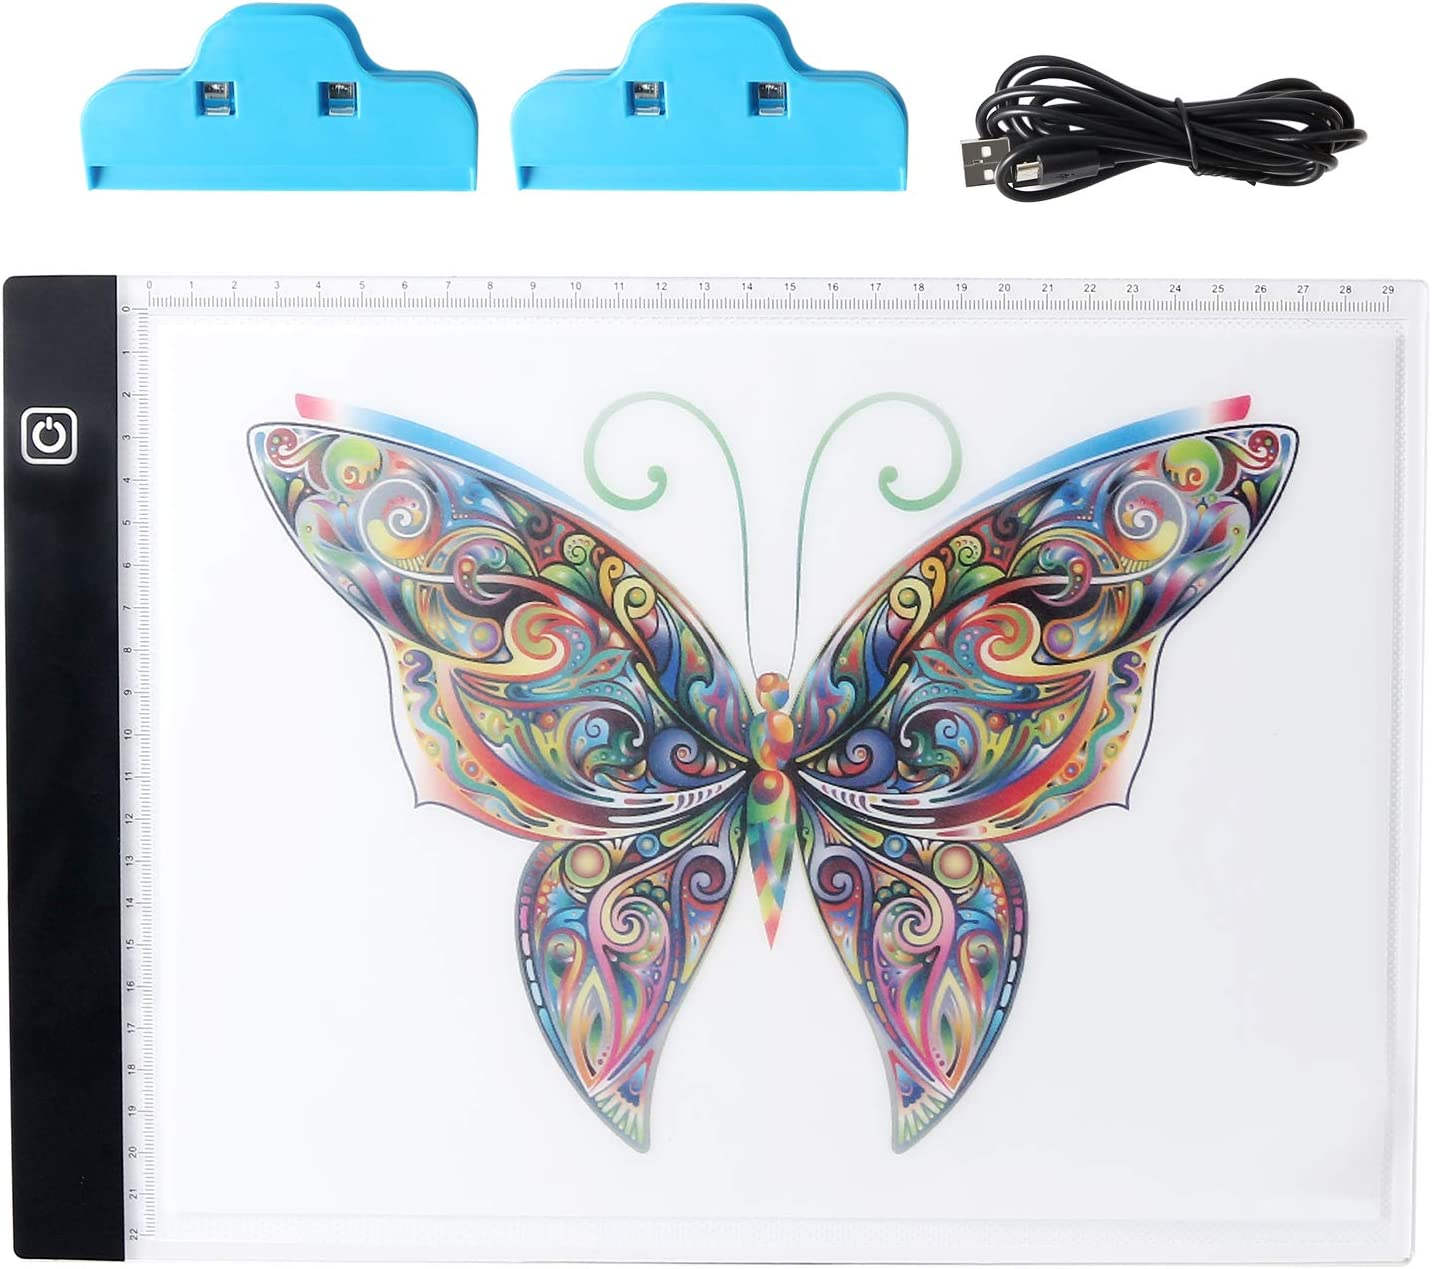 MEYUEWAL Portable LED Light Box A4 Size USB Power Cable Dimmable Brightness LED Artcraft Tracing Light Box Light Pad Light Table for Artists Drawing